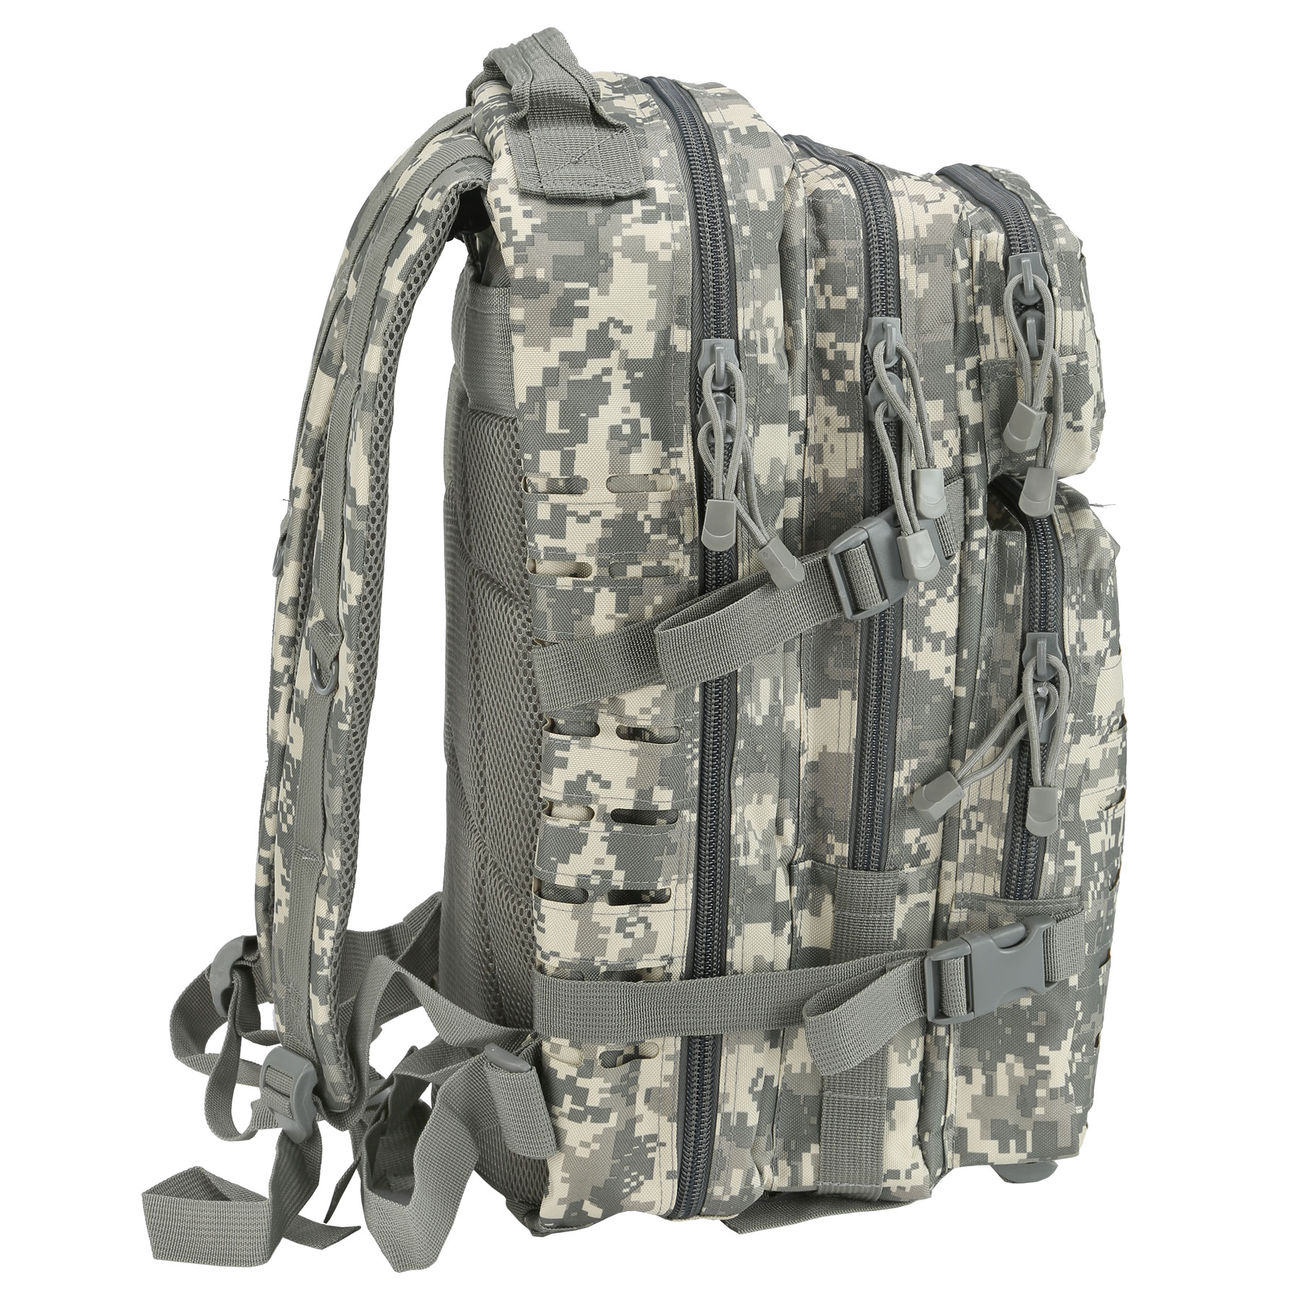 MFH Rucksack US Assault I Laser 30L AT-digital 1